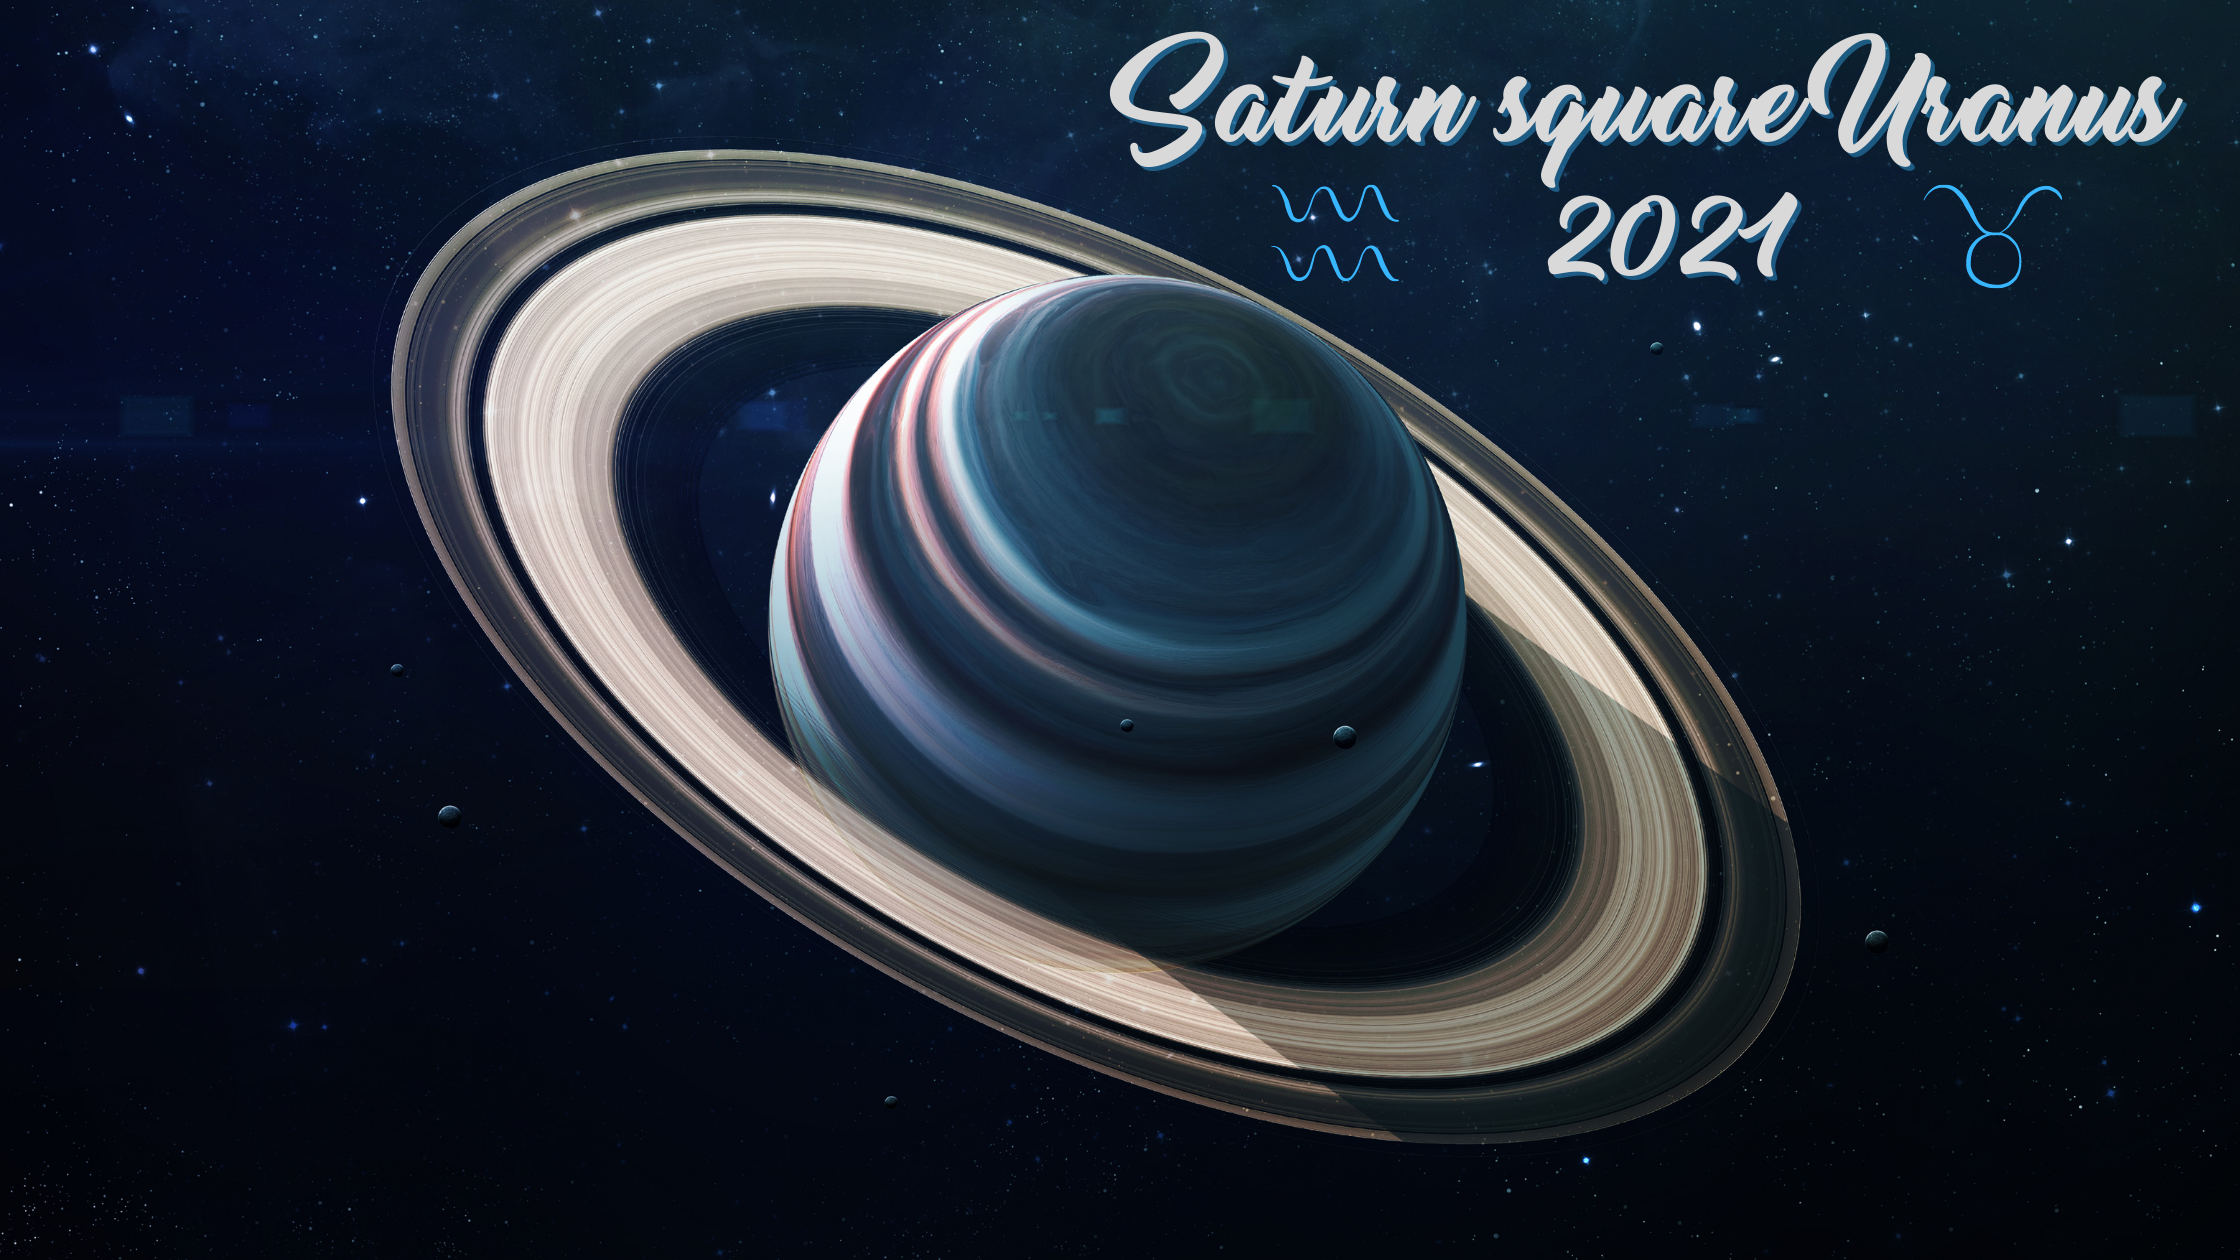 Saturn square Uranus – 2021